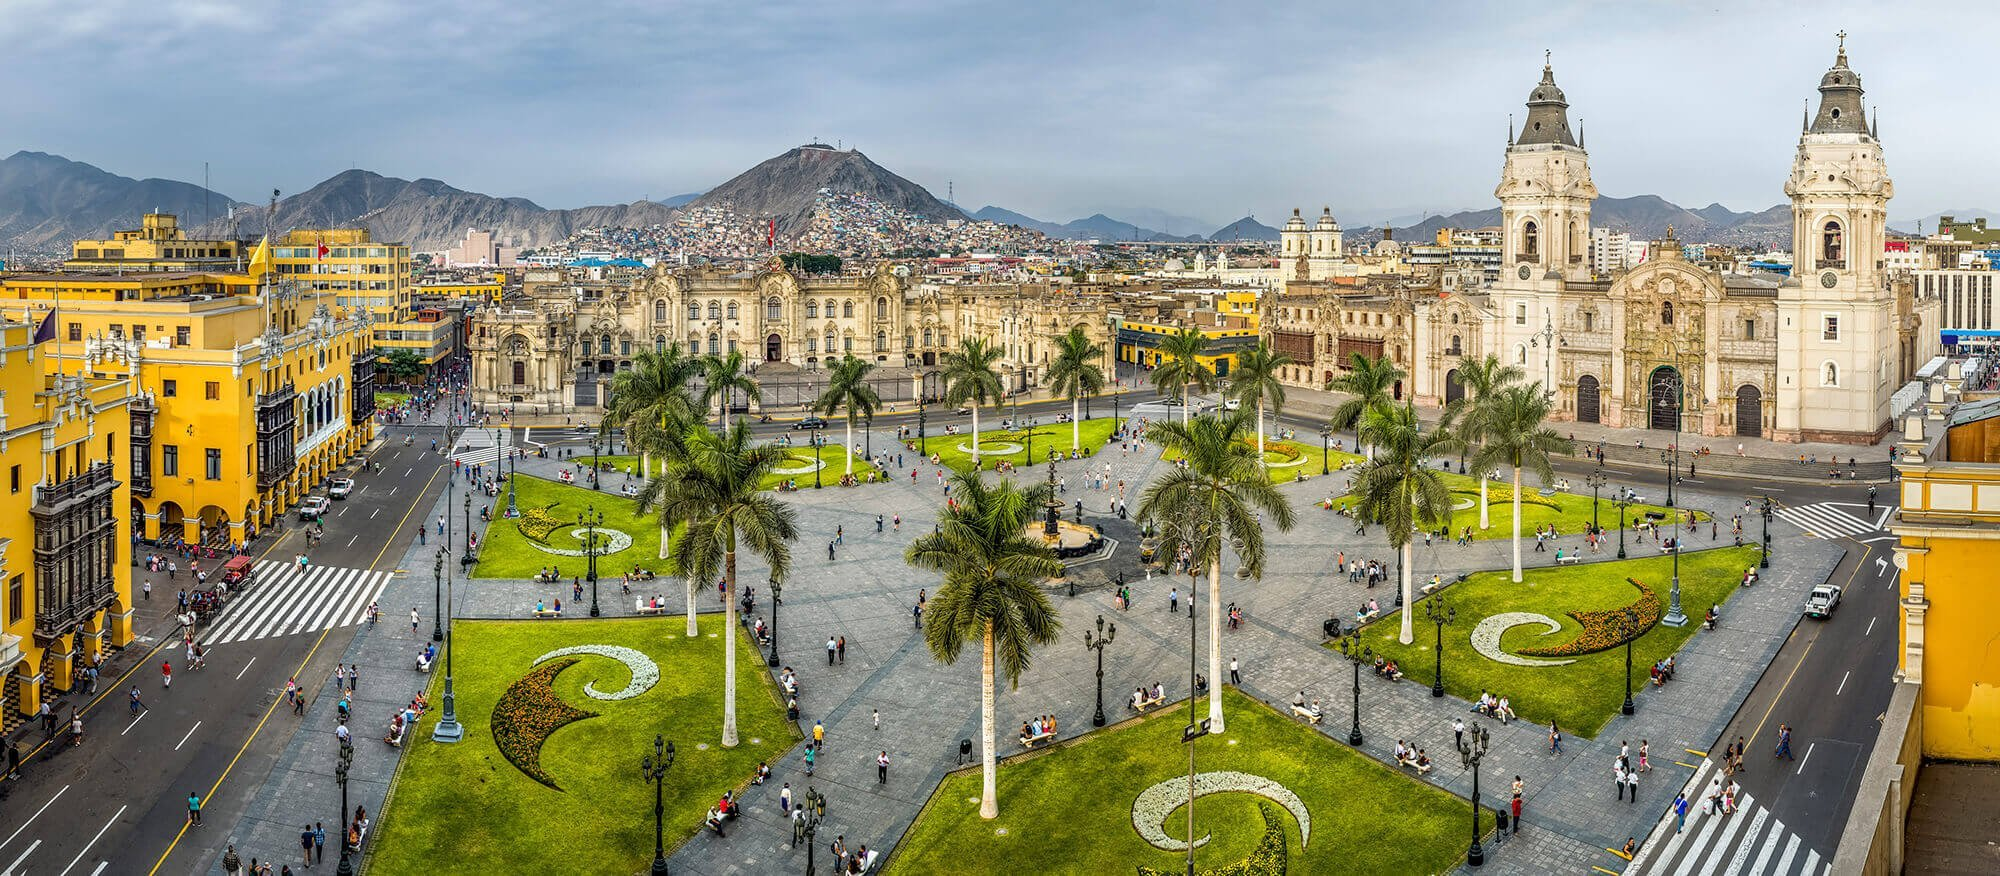 Plaza Mayor in Lima with its impressive buildings